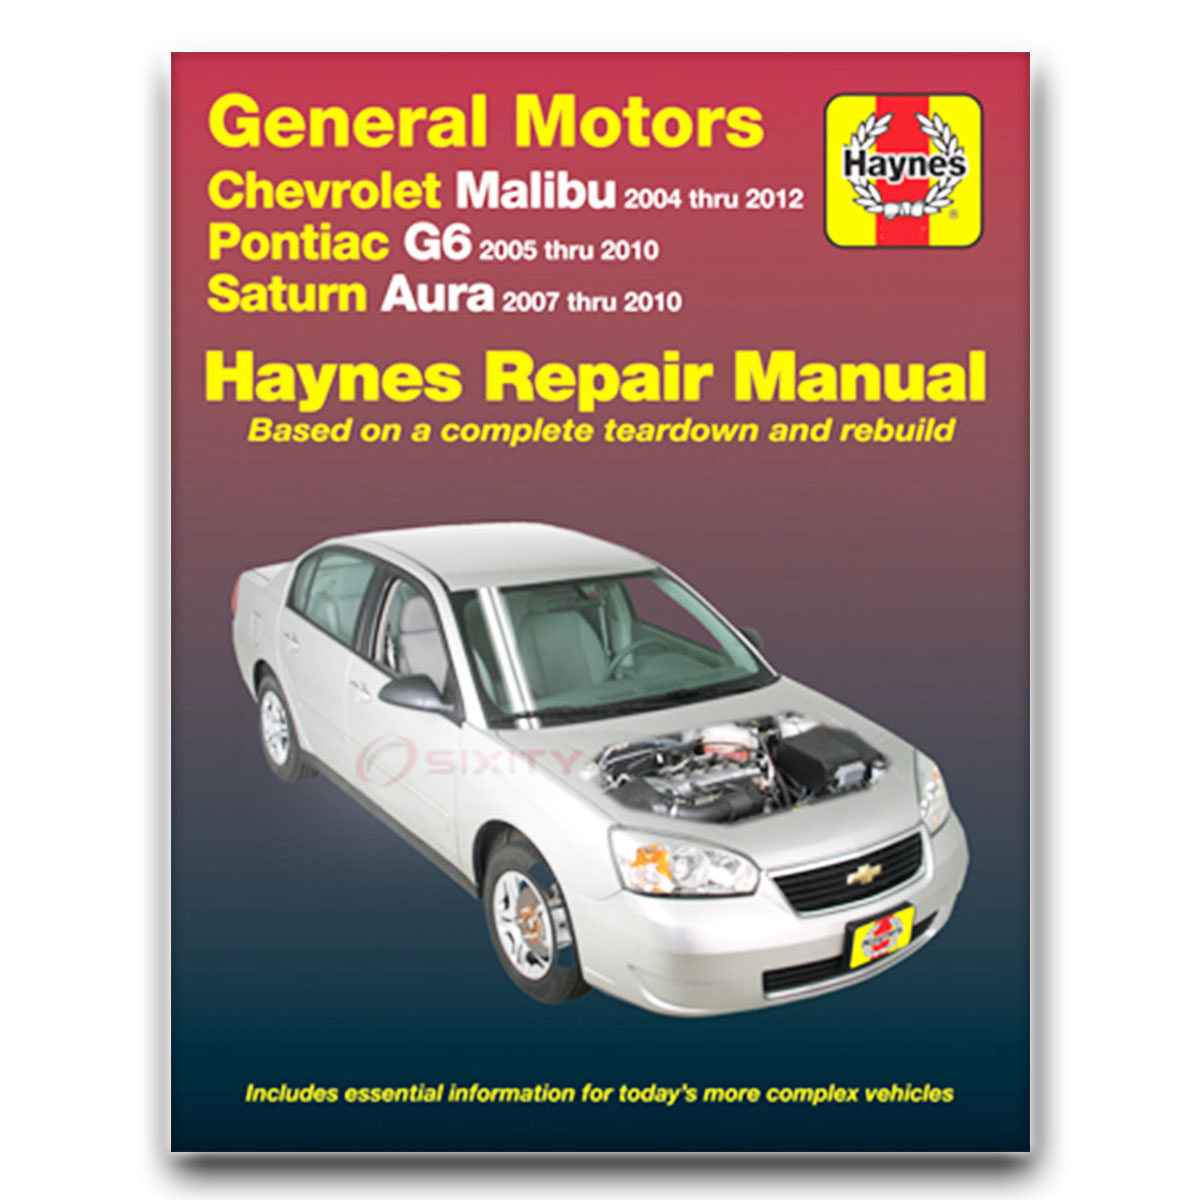 chevy malibu haynes repair manual maxx lt ss ls base ltz classic rh ebay com 2007 Chevrolet Cobalt Sedan 2007 Chevrolet Cobalt Sedan